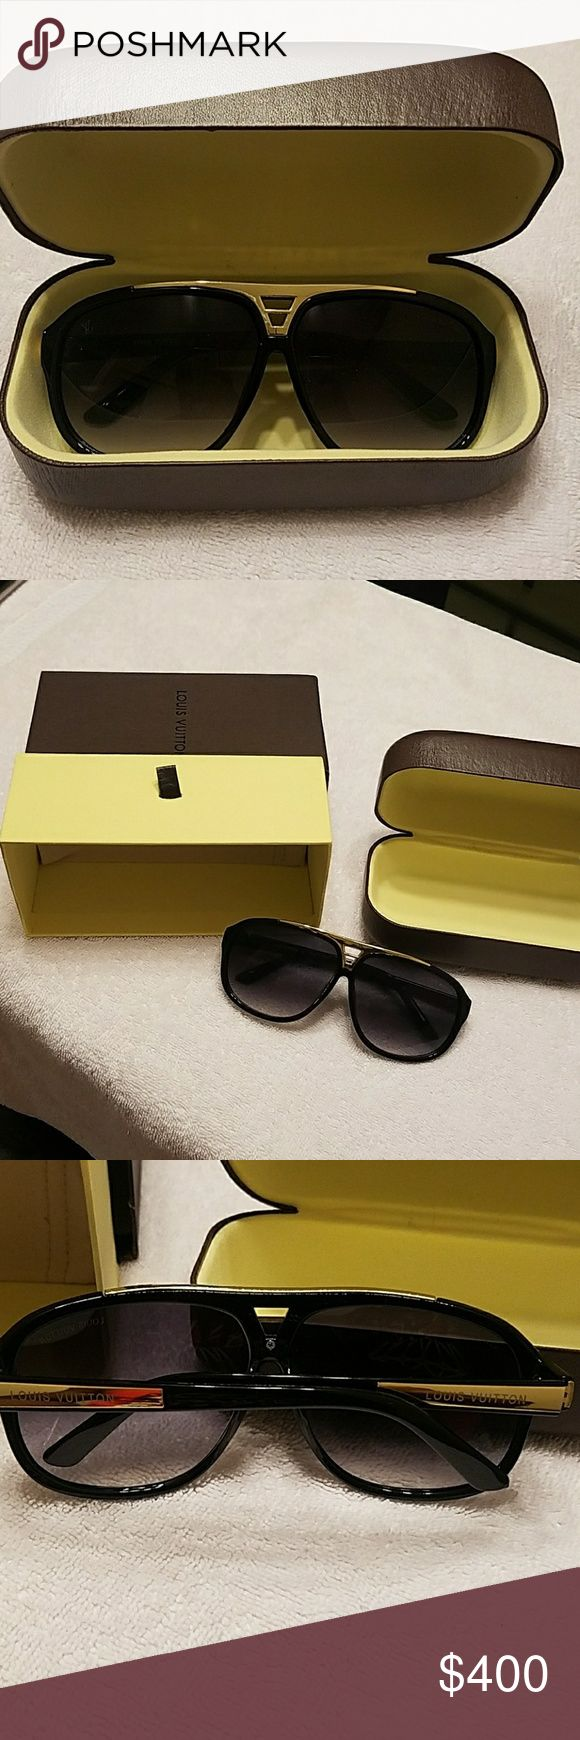 Louis Vuitton evidence millionaire sunglasses Worn once Louis Vuitton Accessories Glasses